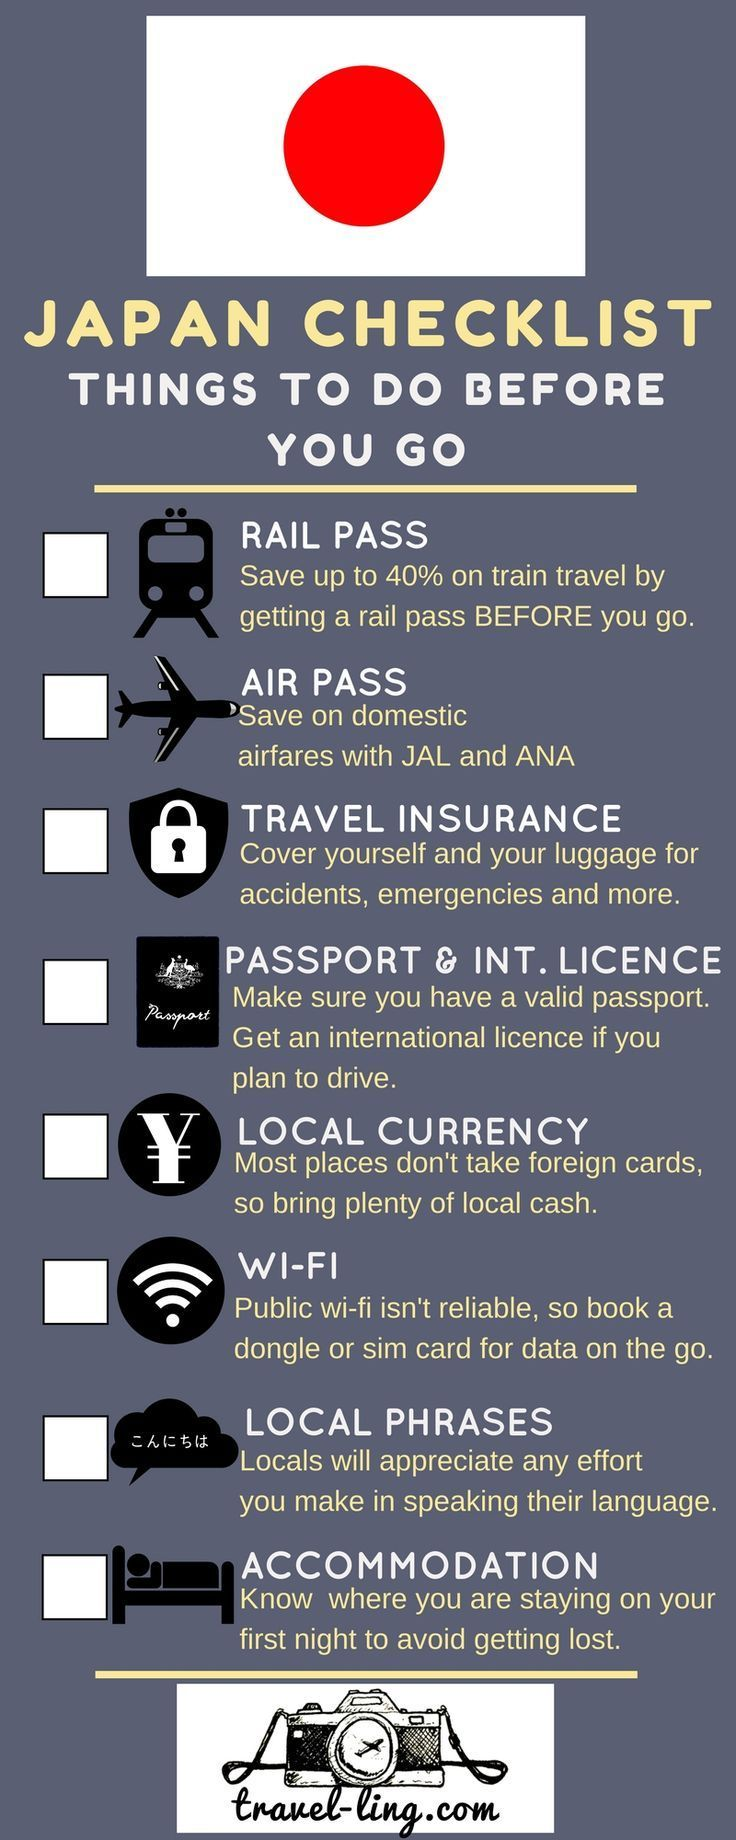 things to do before your trip to japan | japan travel | pinterest